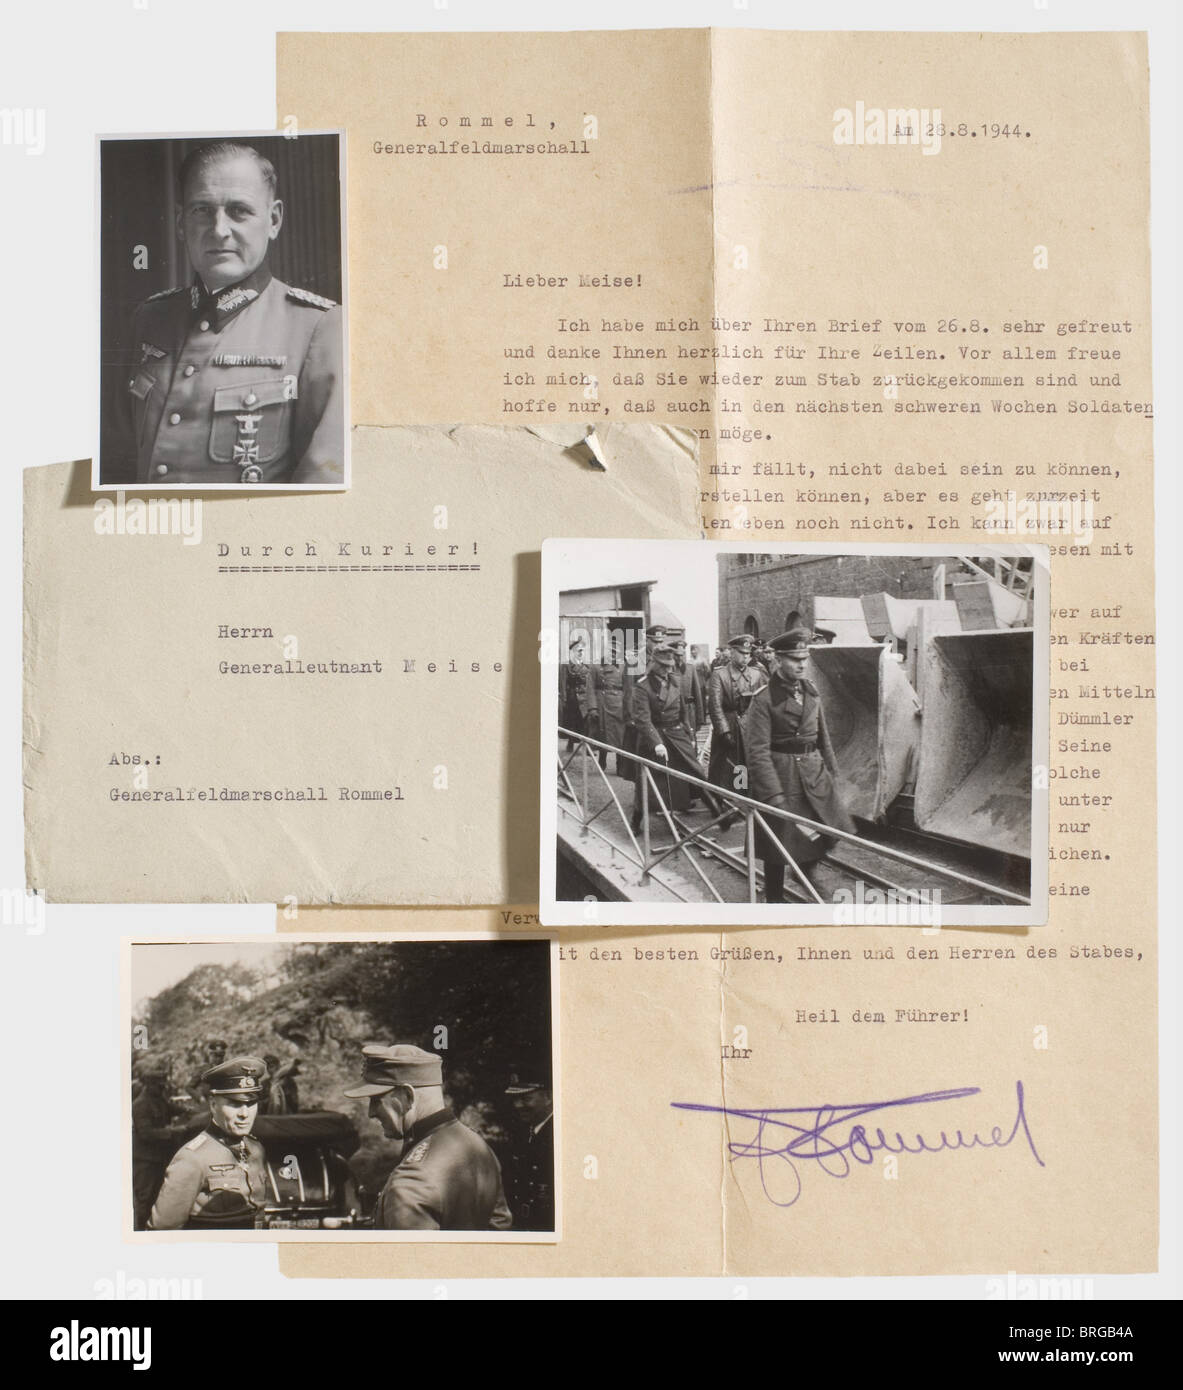 Field Marshal Erwin Rommel, a personal letter to Major General Meise dated August 28, 1944 After his injury Rommel - Stock Image